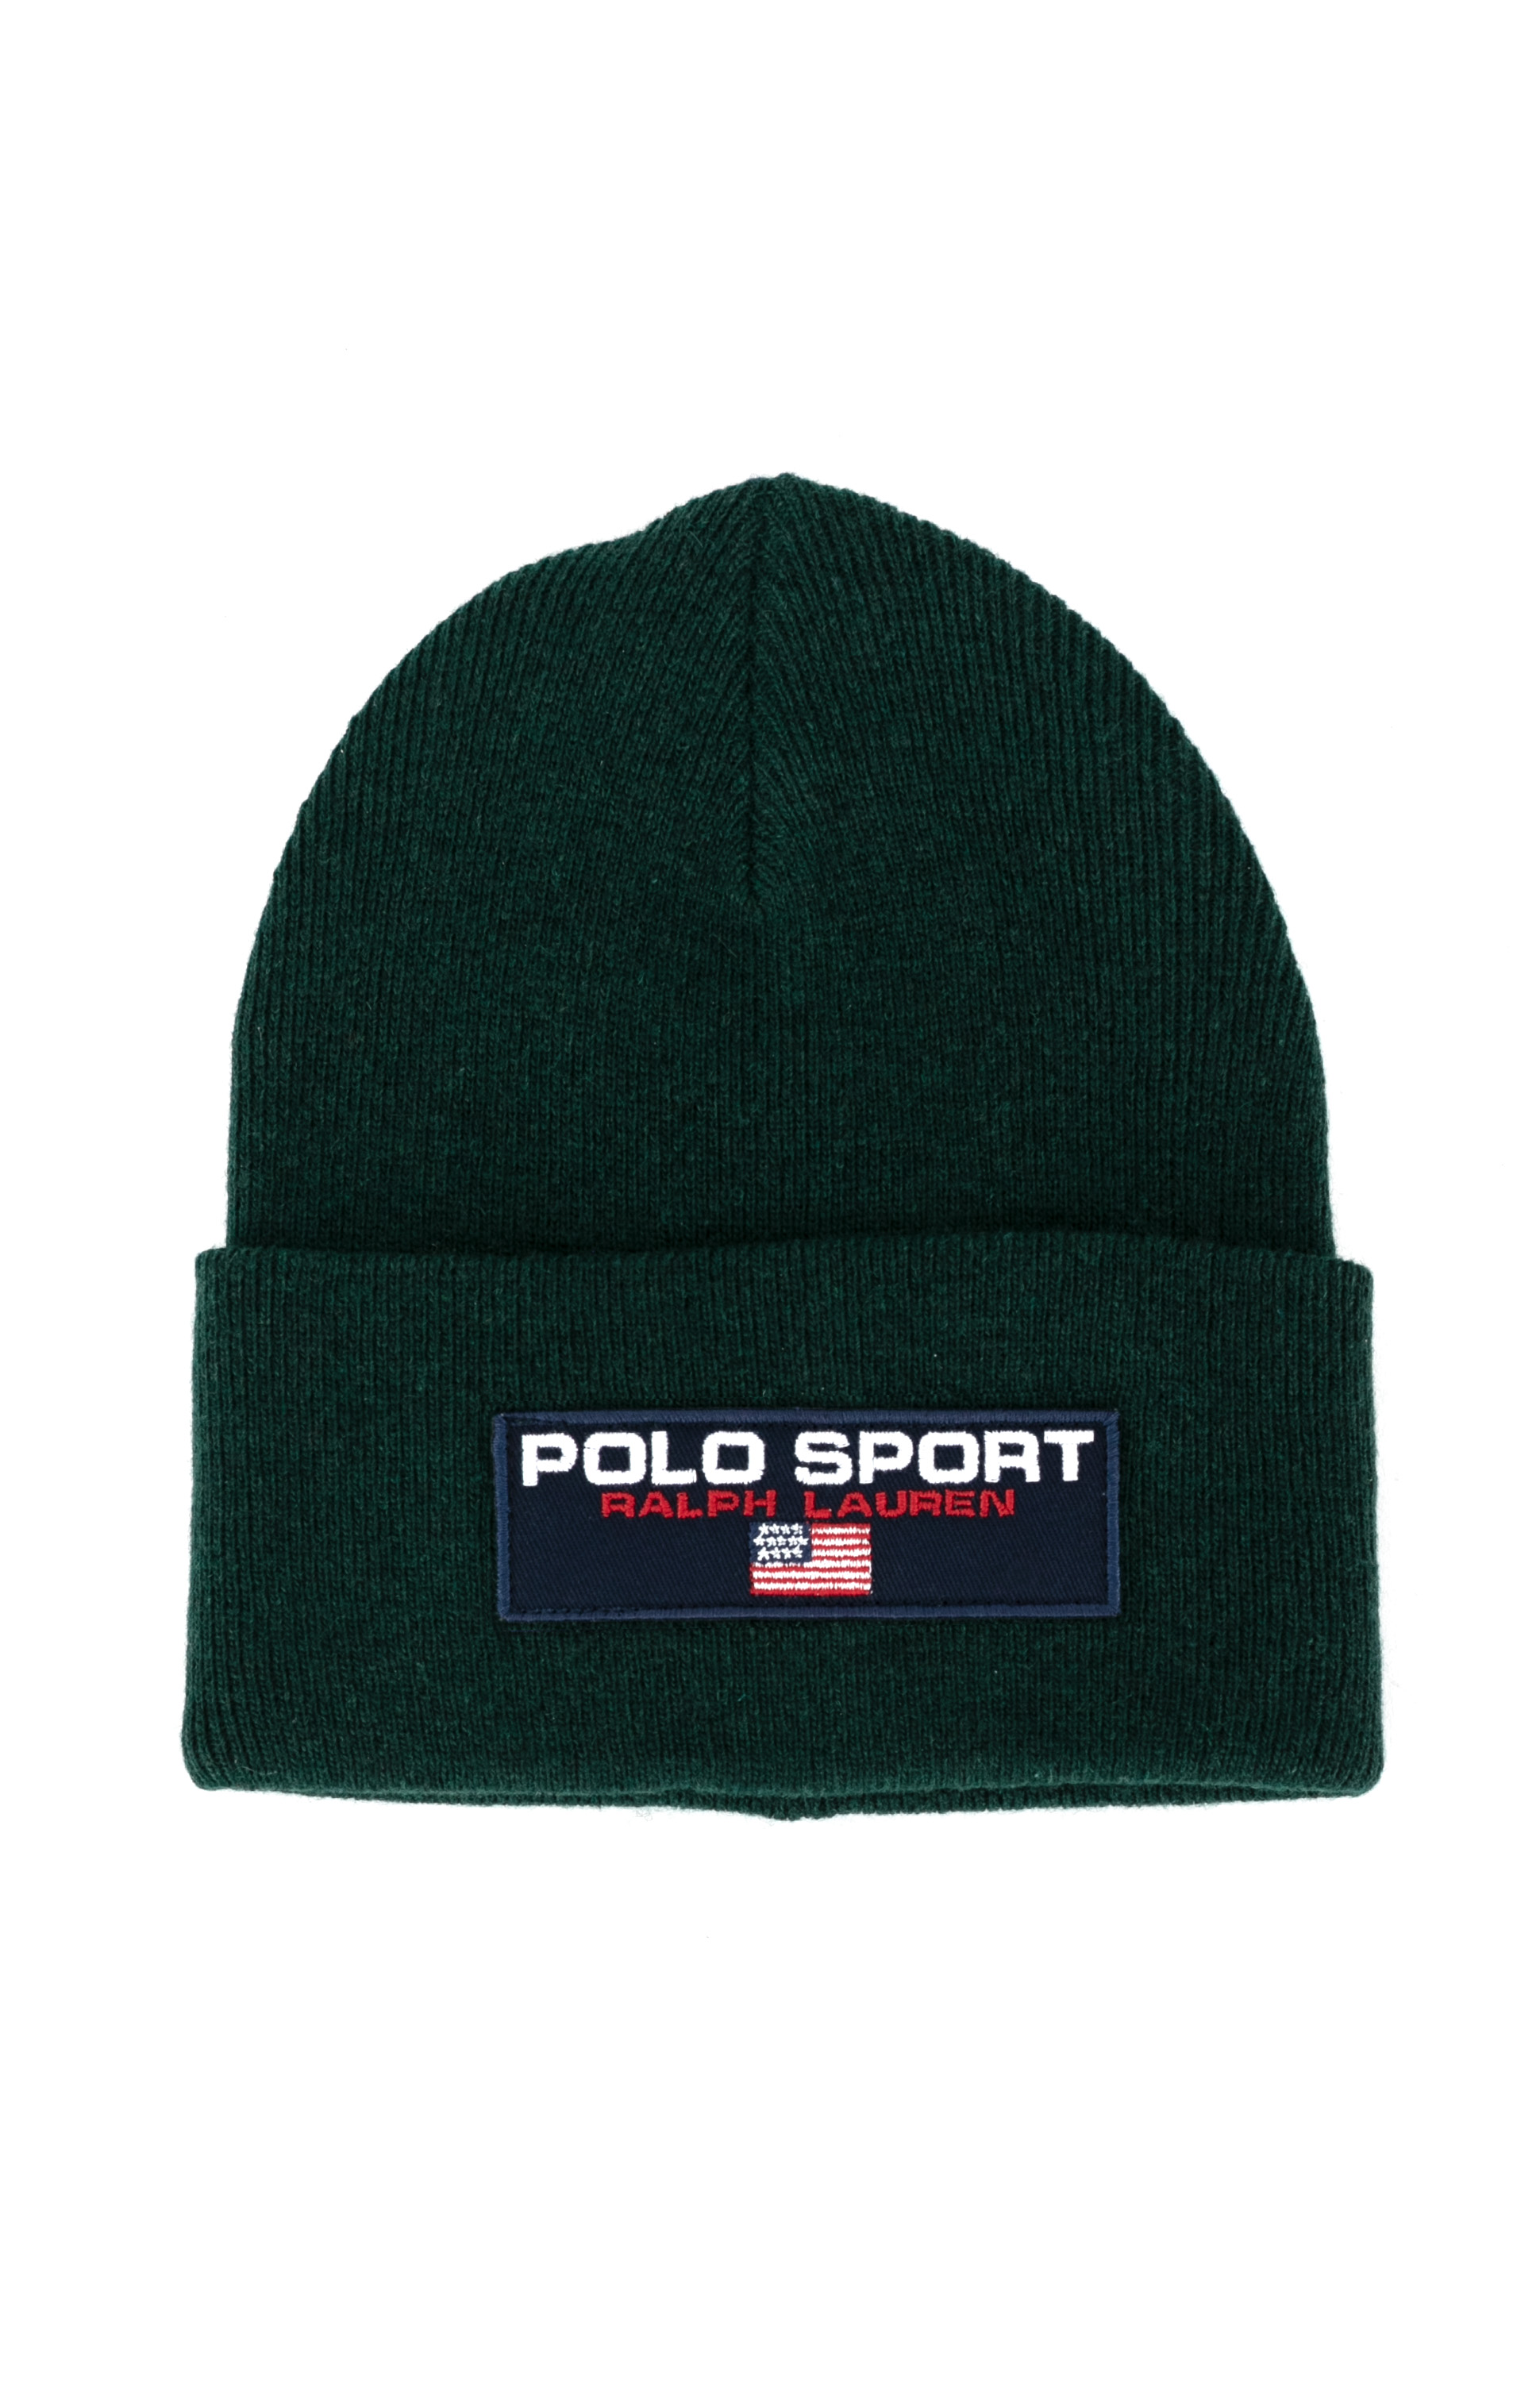 Polo Sport Beanie - College Green